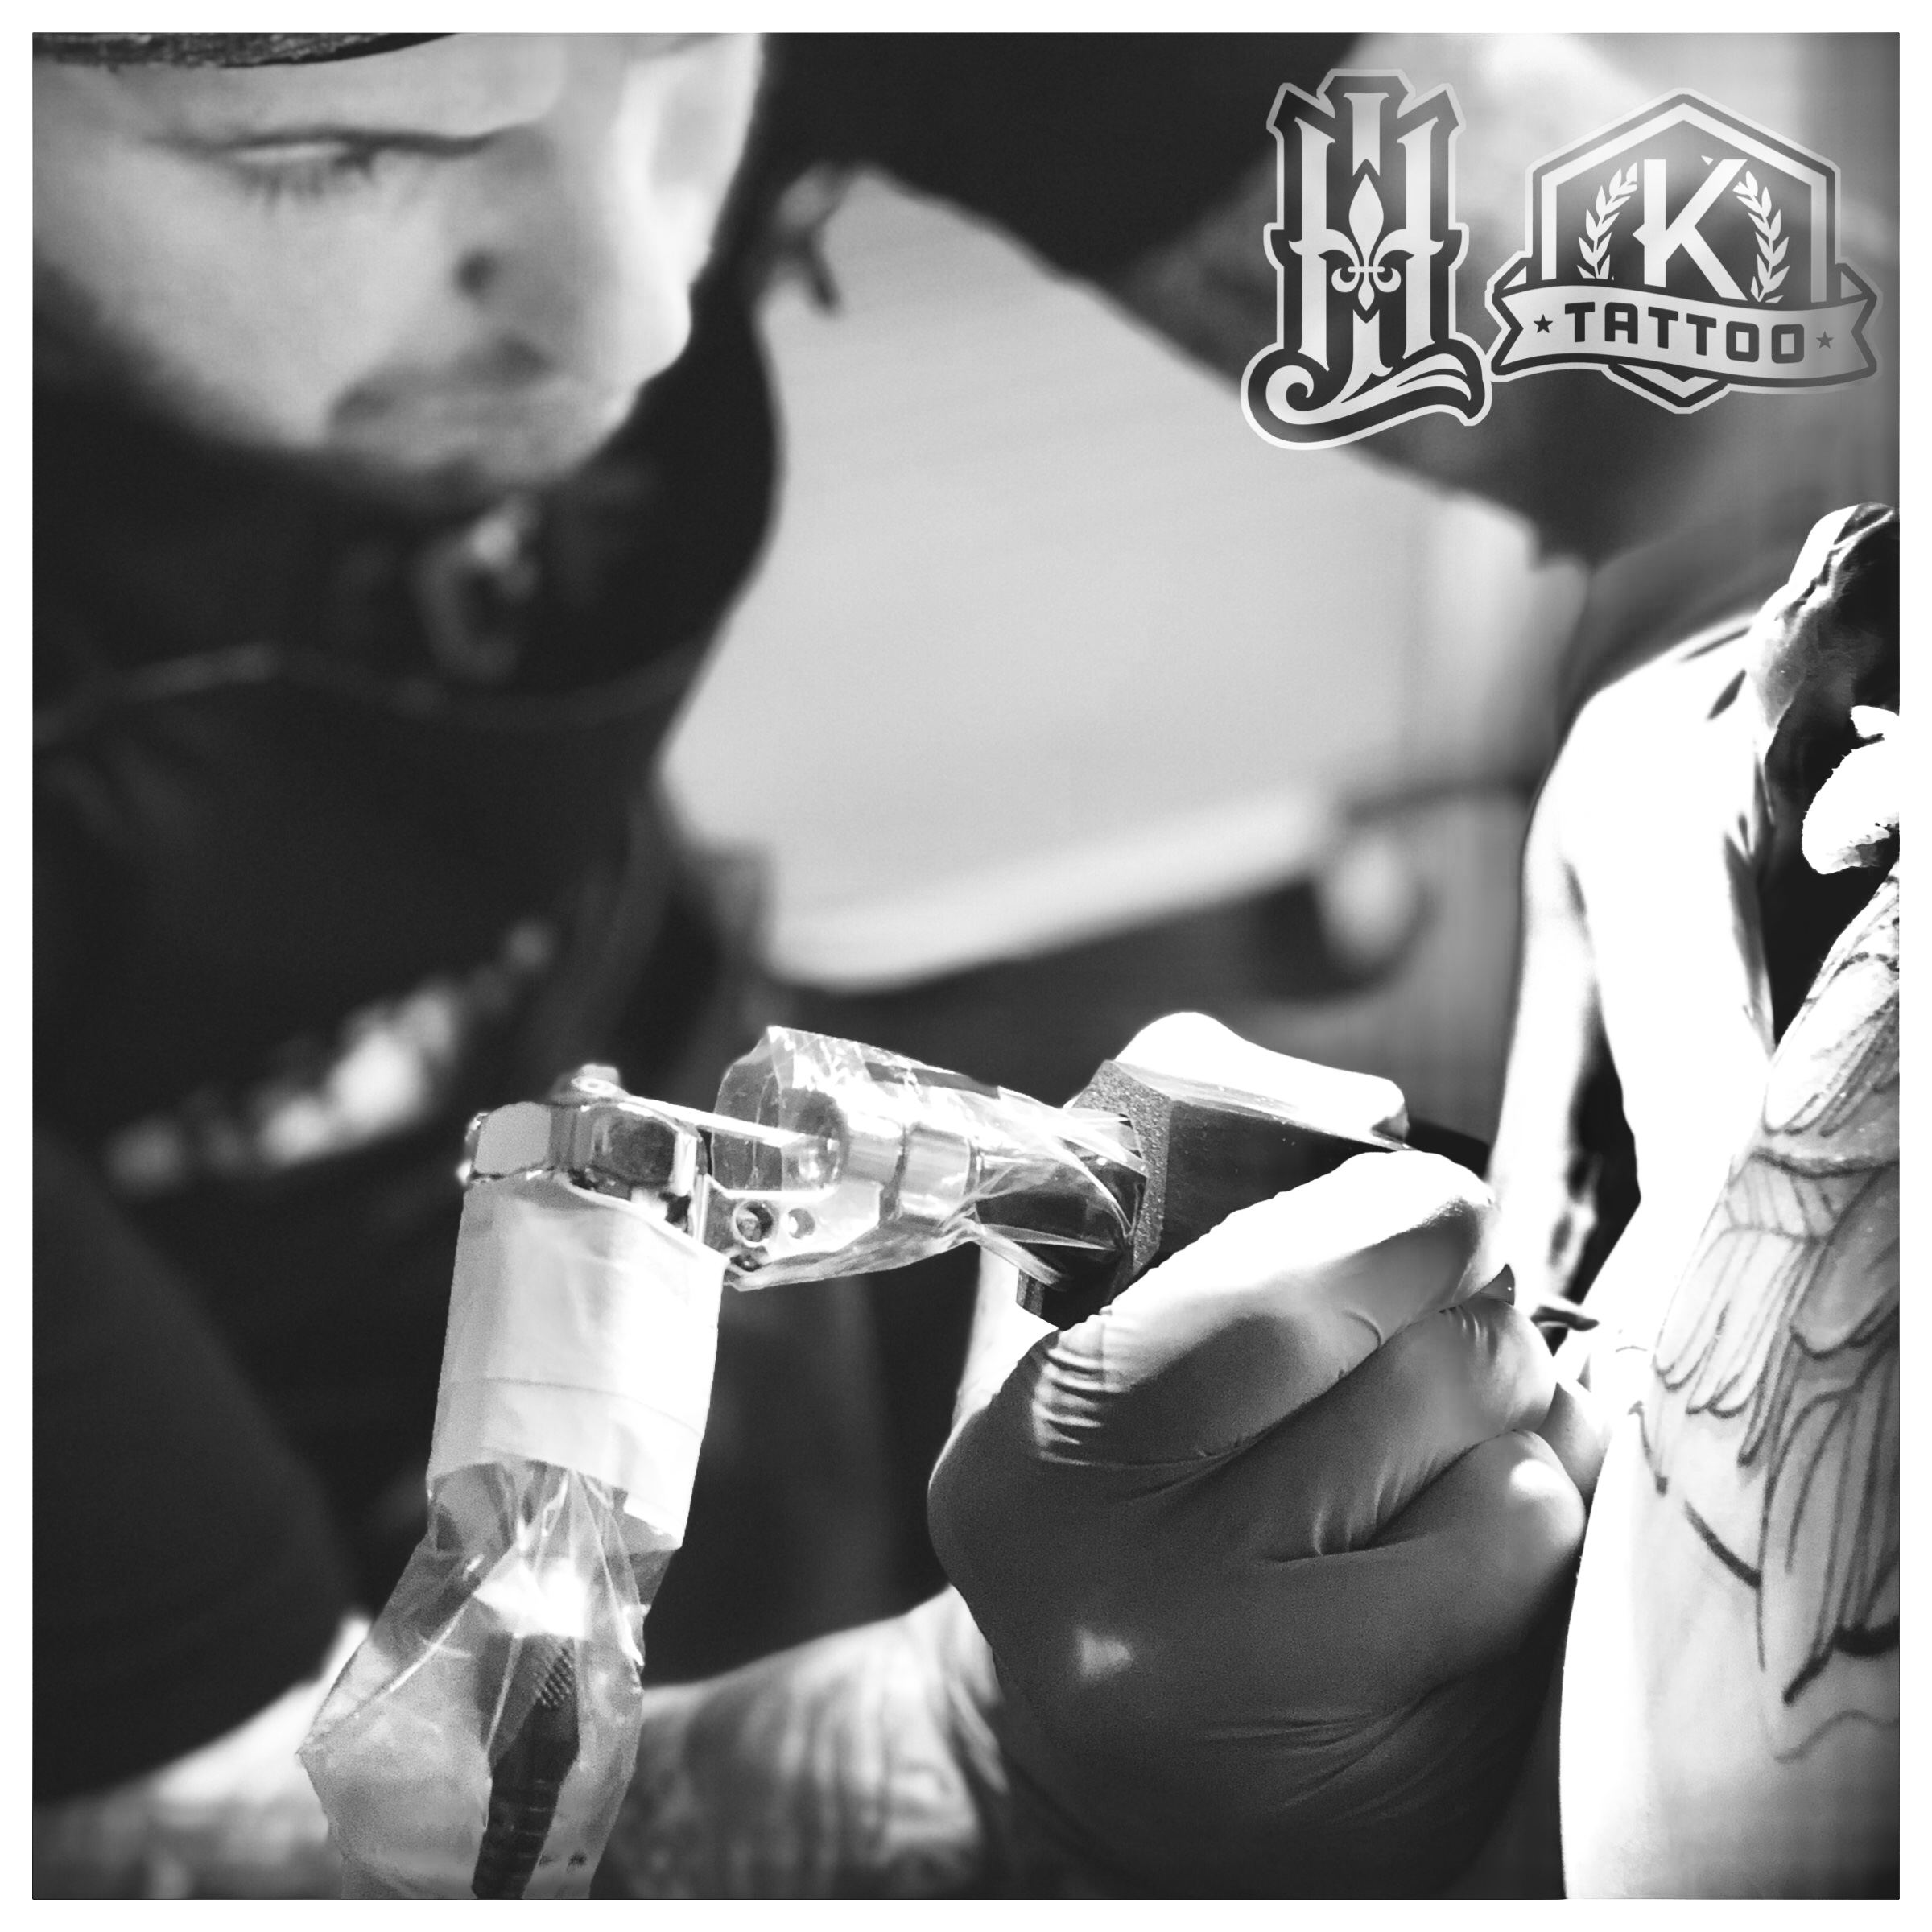 Aaron Krueger - Aaron is the owner/solo tattoo artist at Krueger Tattoo Studio located in Eau Claire, WI. He has been perfecting his craft for the last 12 years. Over the last decade has become skilled in numerous different styles. He loves doing everything from traditional to new school, color to black and grey, simple designs to complex. Click on the link to check out some of his work!